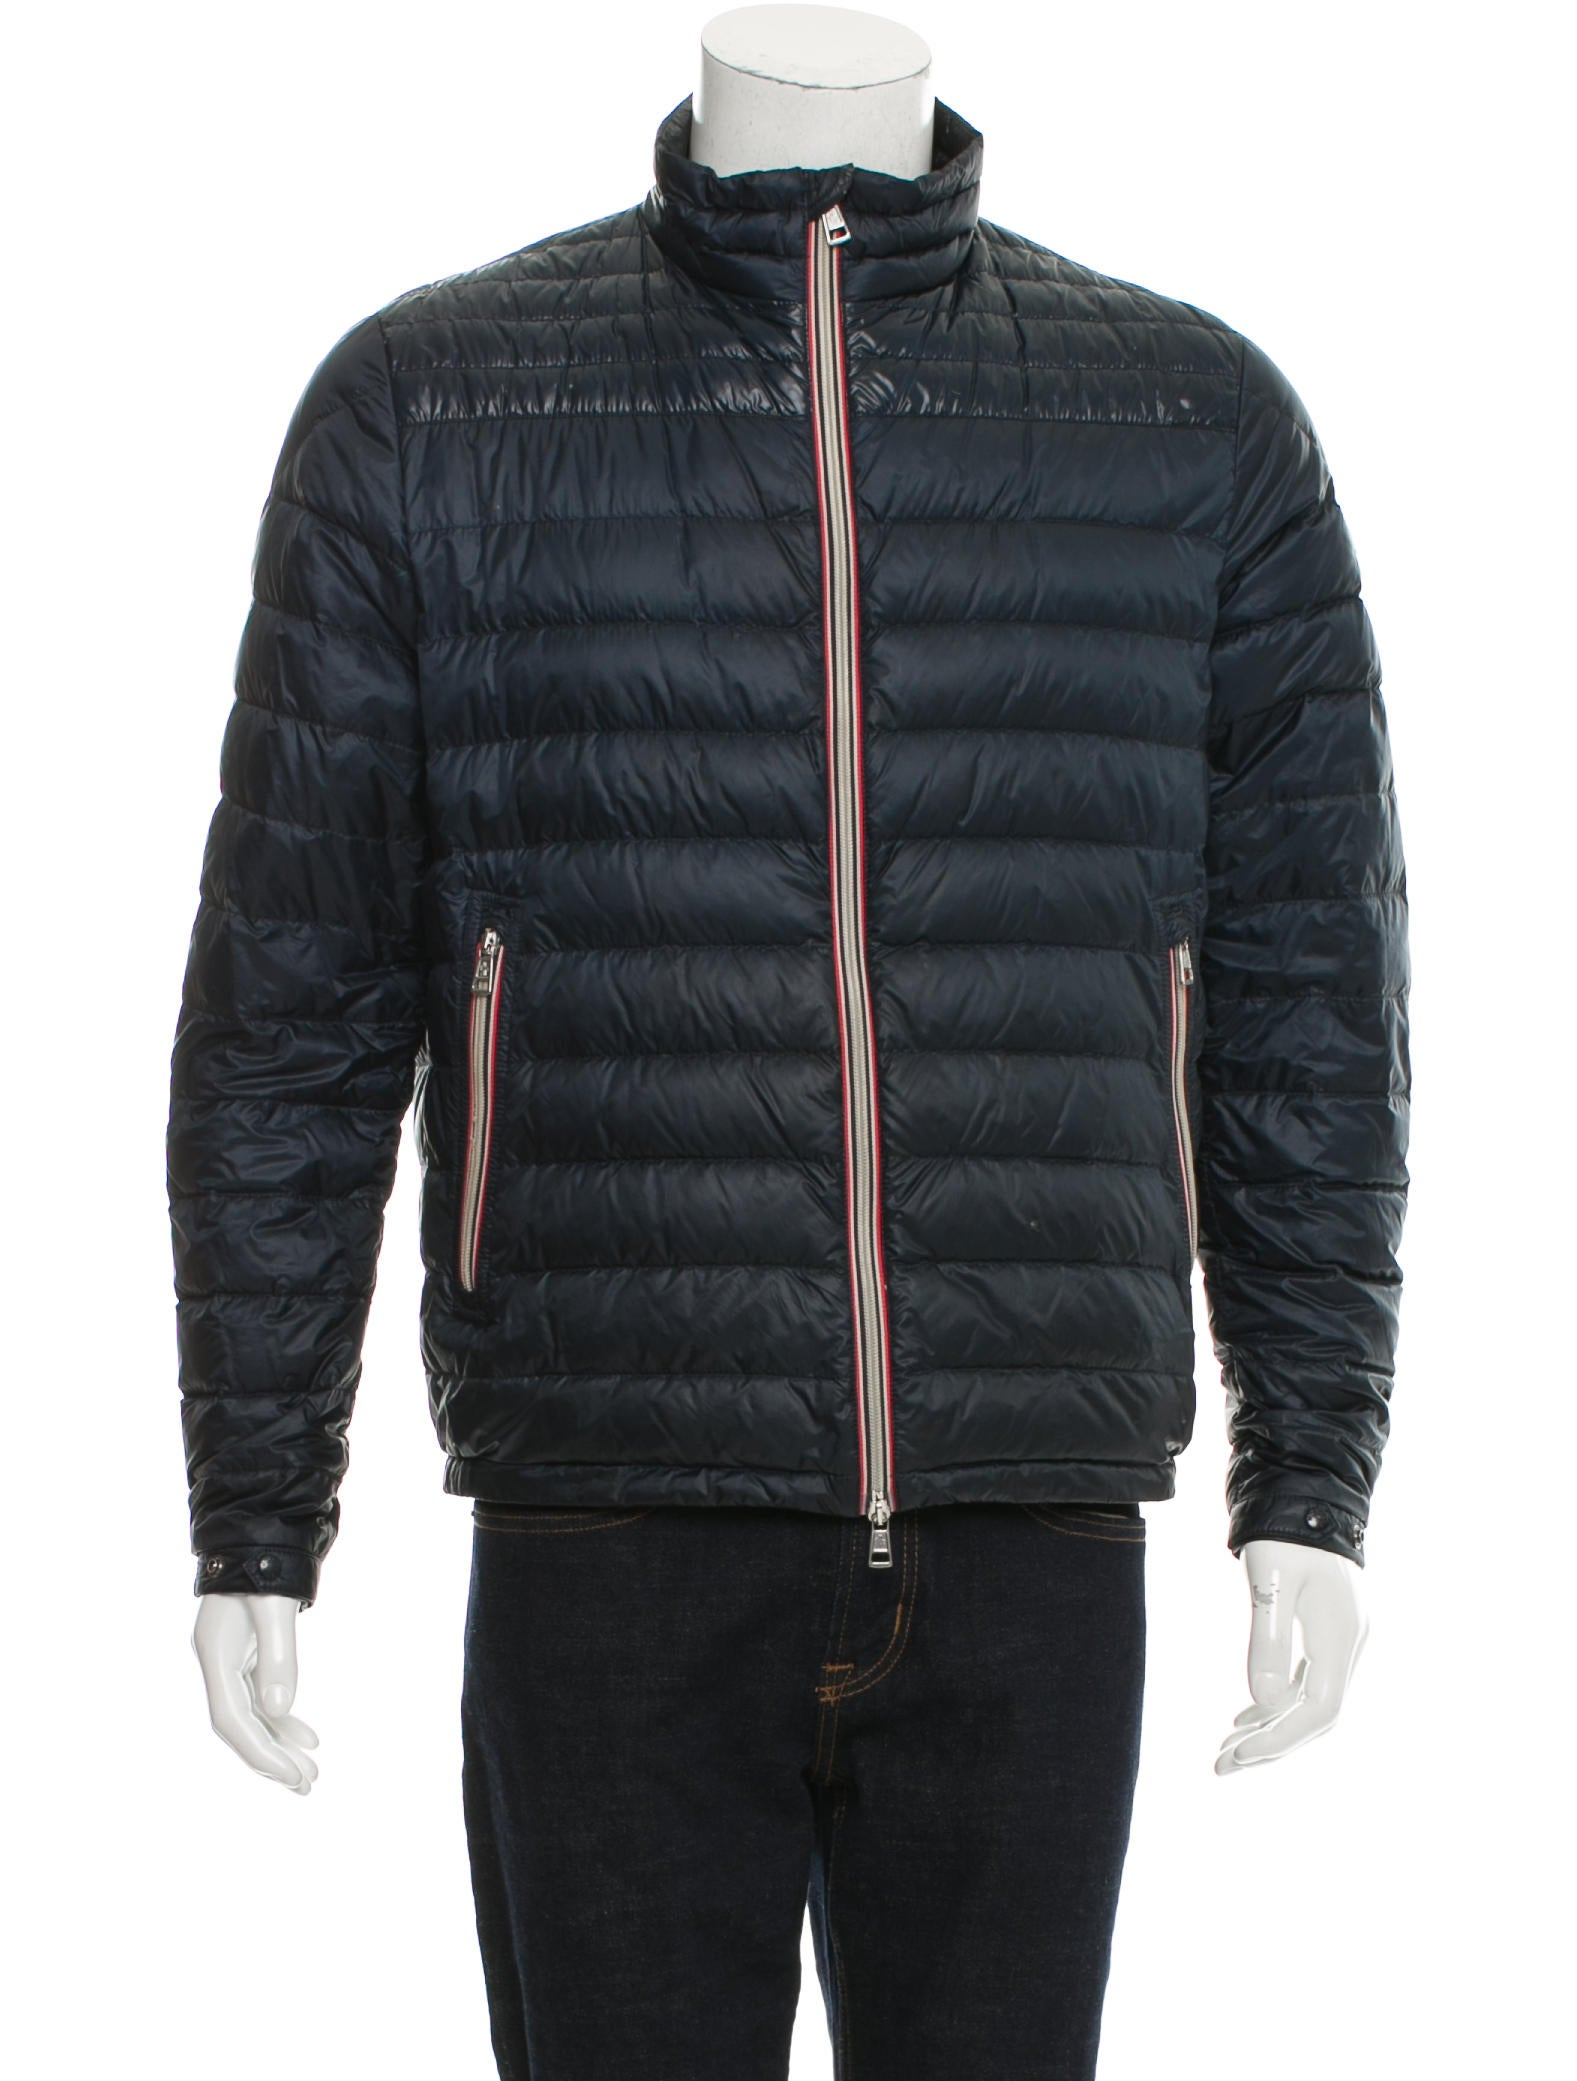 Moncler Daniel Quilted Jacket - Clothing - MOC27131   The RealReal